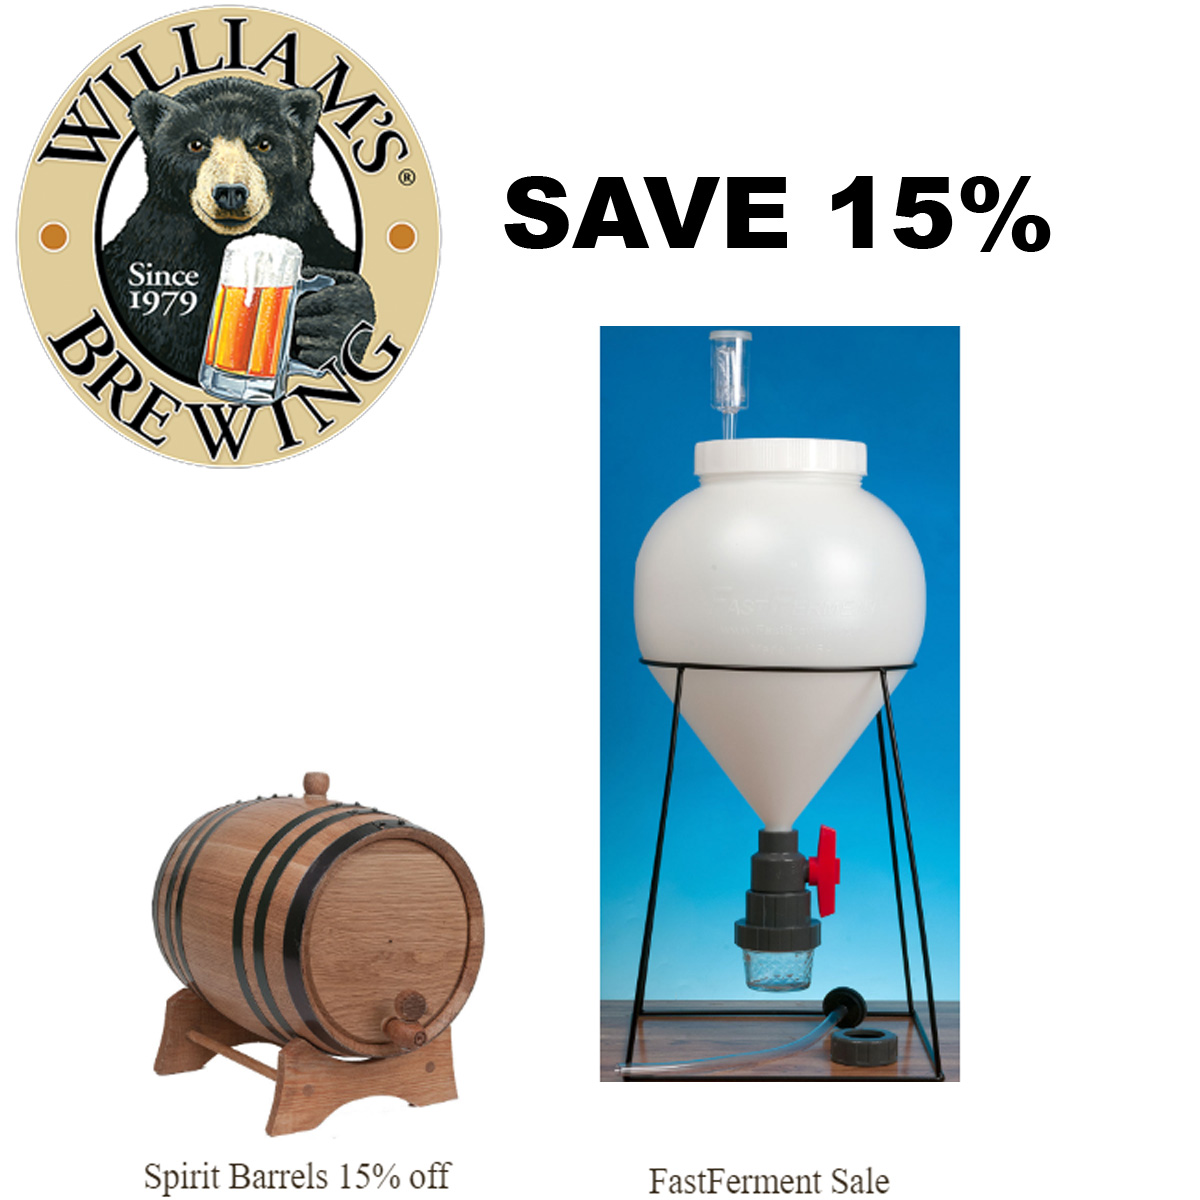 Home Wine Making Coupon Codes for Save 15% On Fast Ferment Fermenters at Williams Brewing Coupon Code Coupon Code